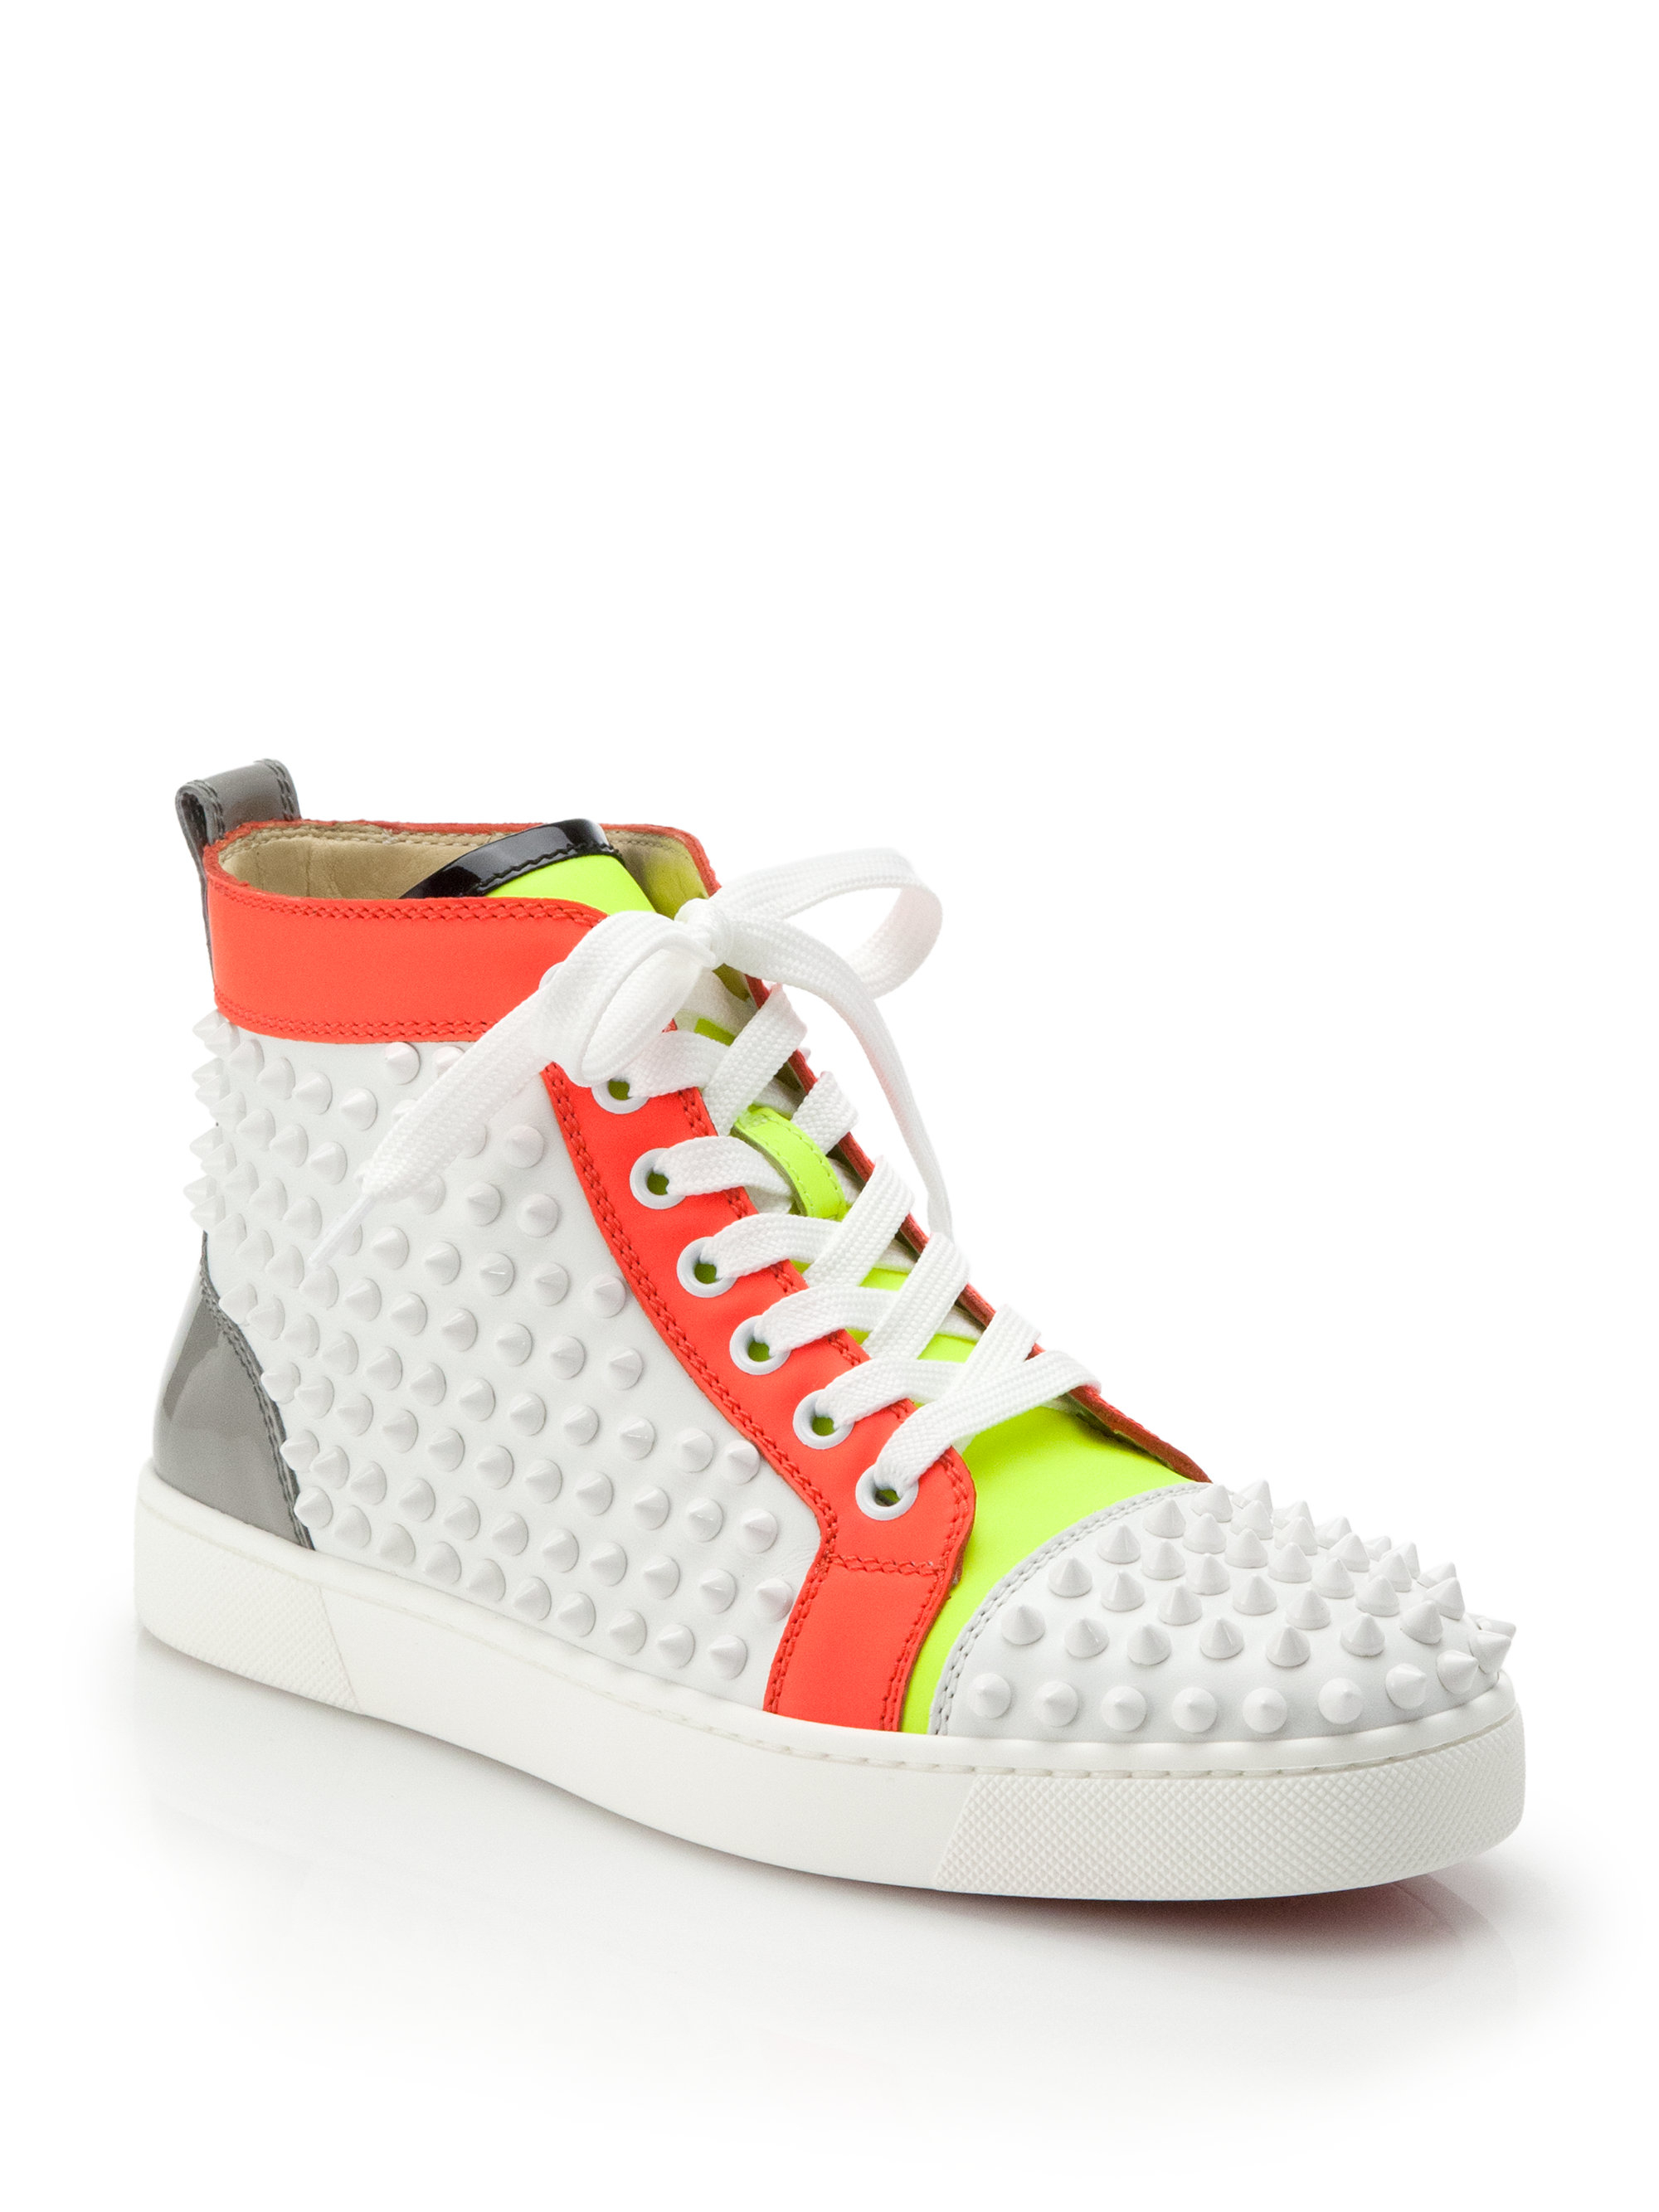 christian louboutin sneakers womens